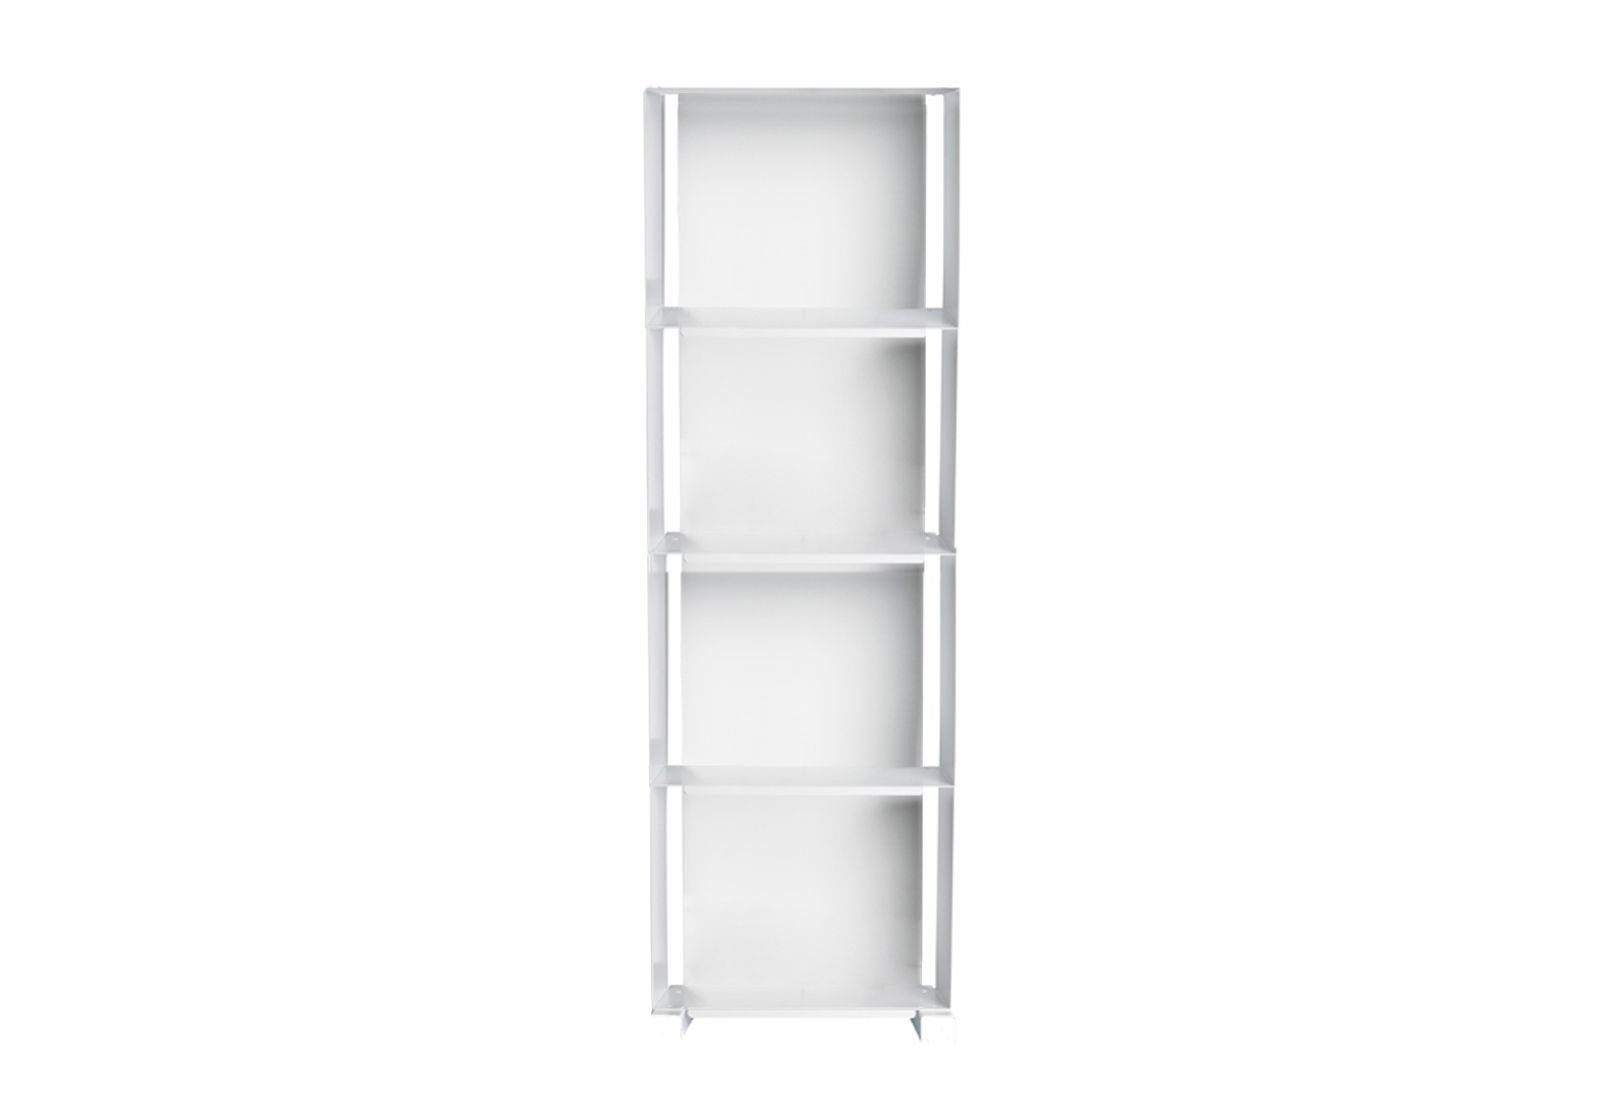 shelf design 4vb l 45 cm p 25 cm h 140 cm teebooks. Black Bedroom Furniture Sets. Home Design Ideas